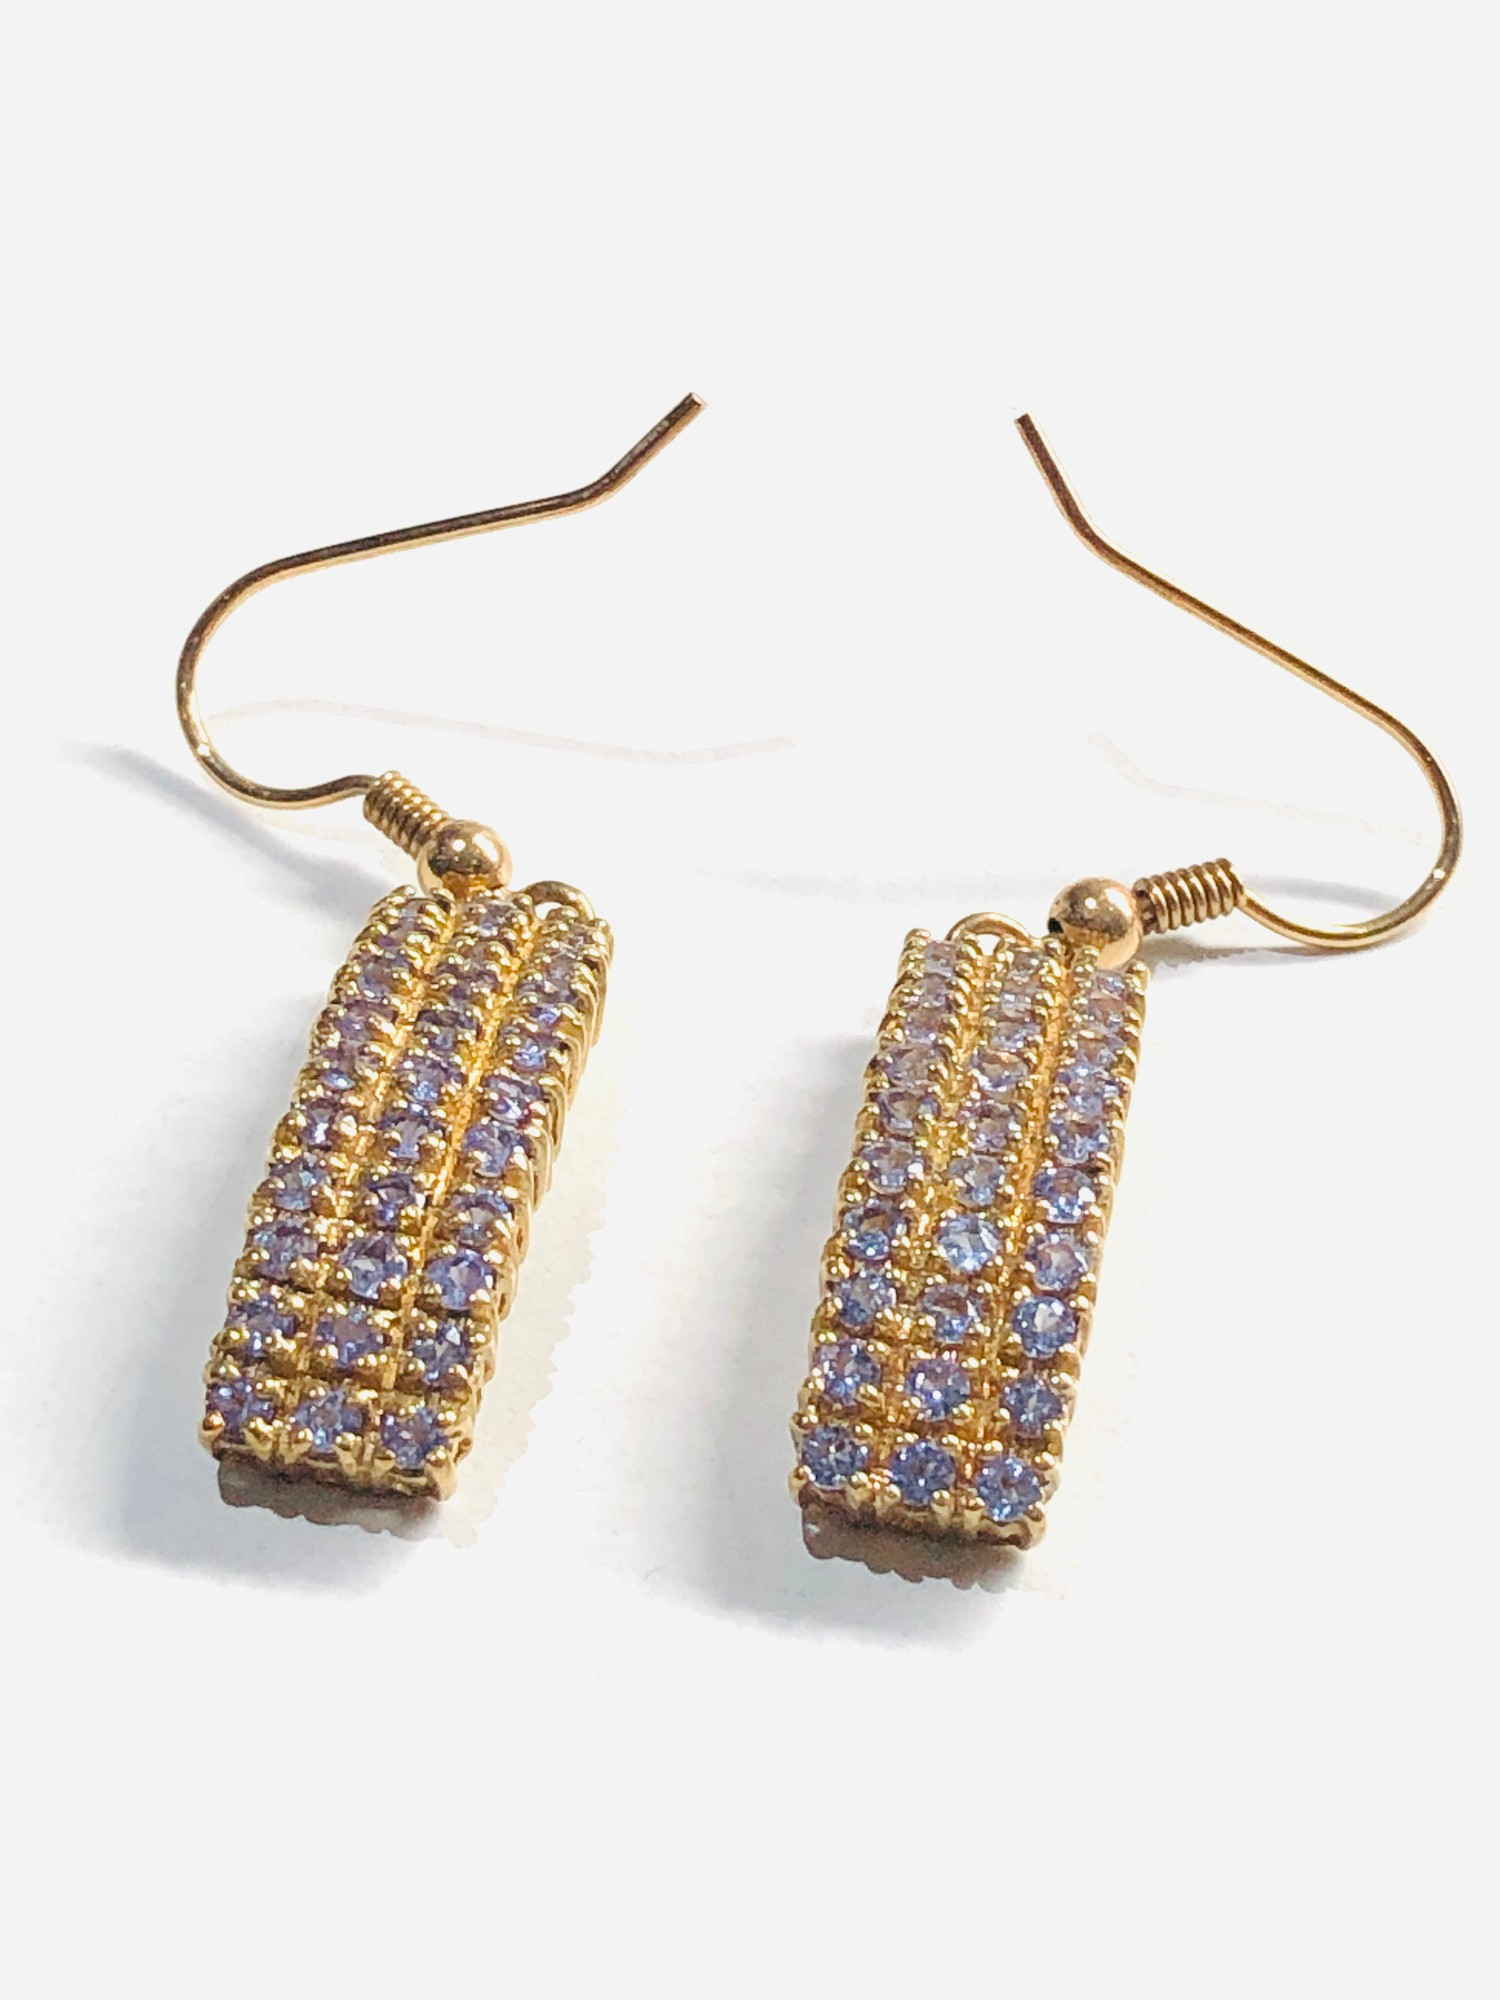 9ct Curved rectangular drop earrings 5.7g - Image 2 of 3